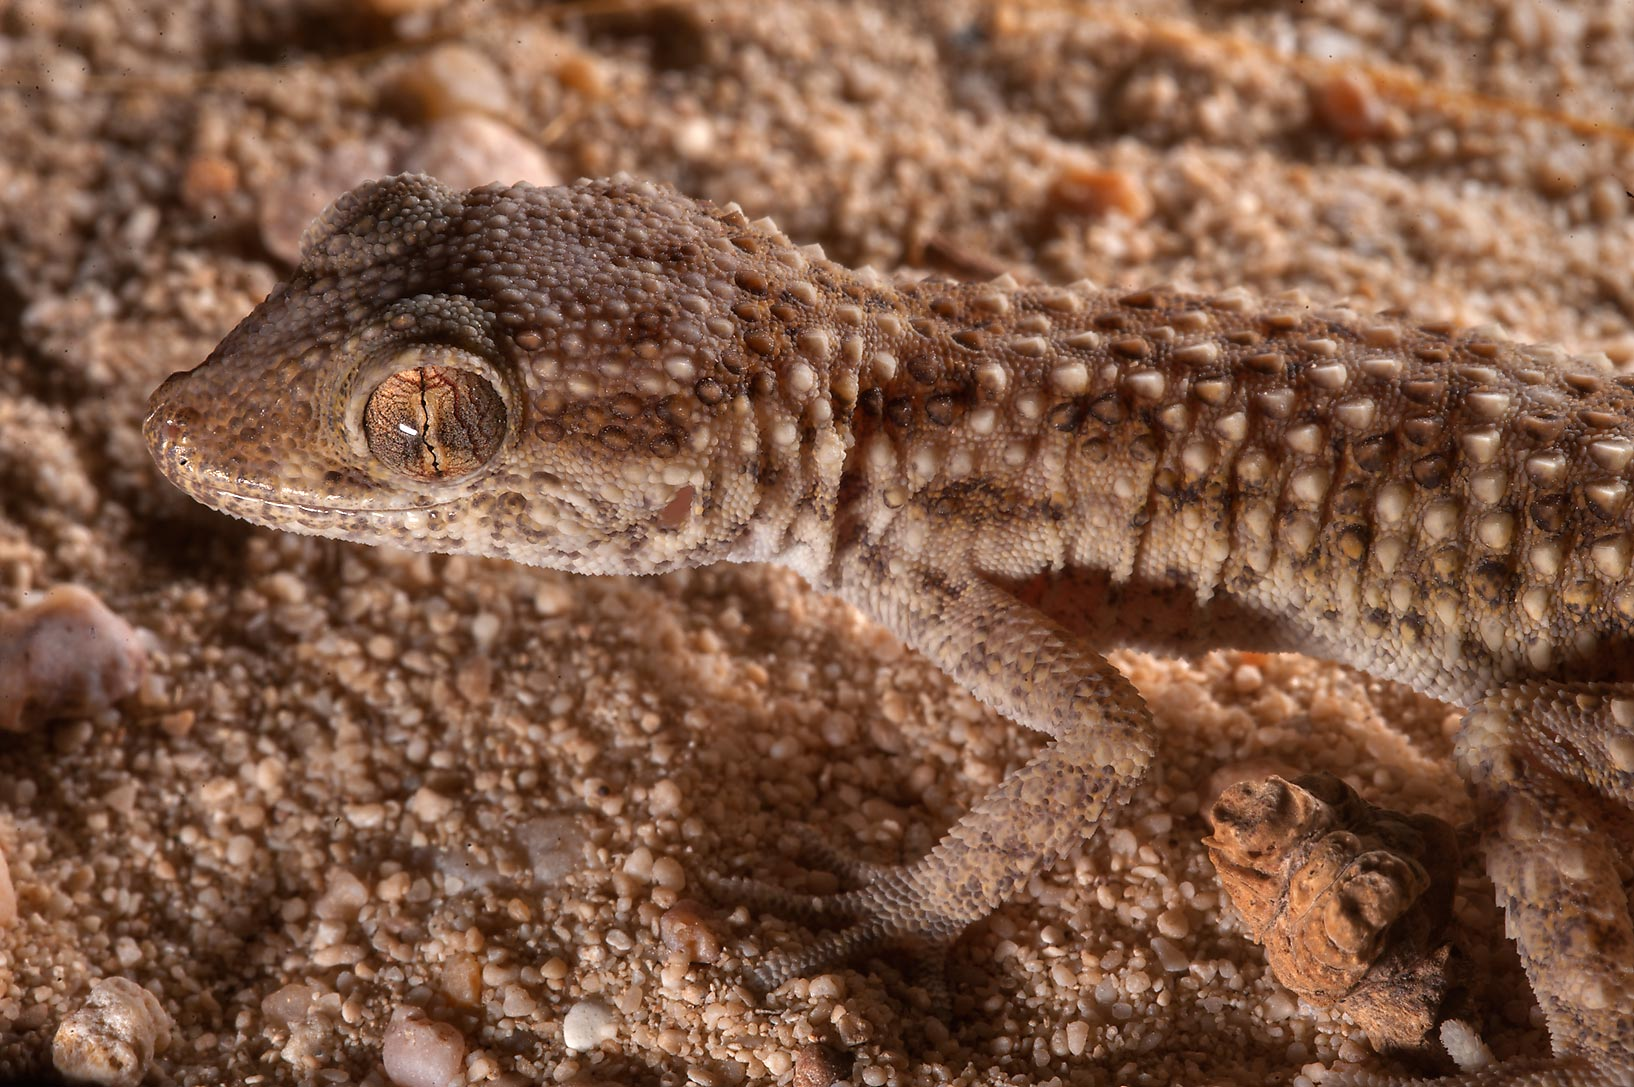 Close up of lizard Button-scaled gecko (Bunopus...between Al Khor and Ras Laffan. Qatar